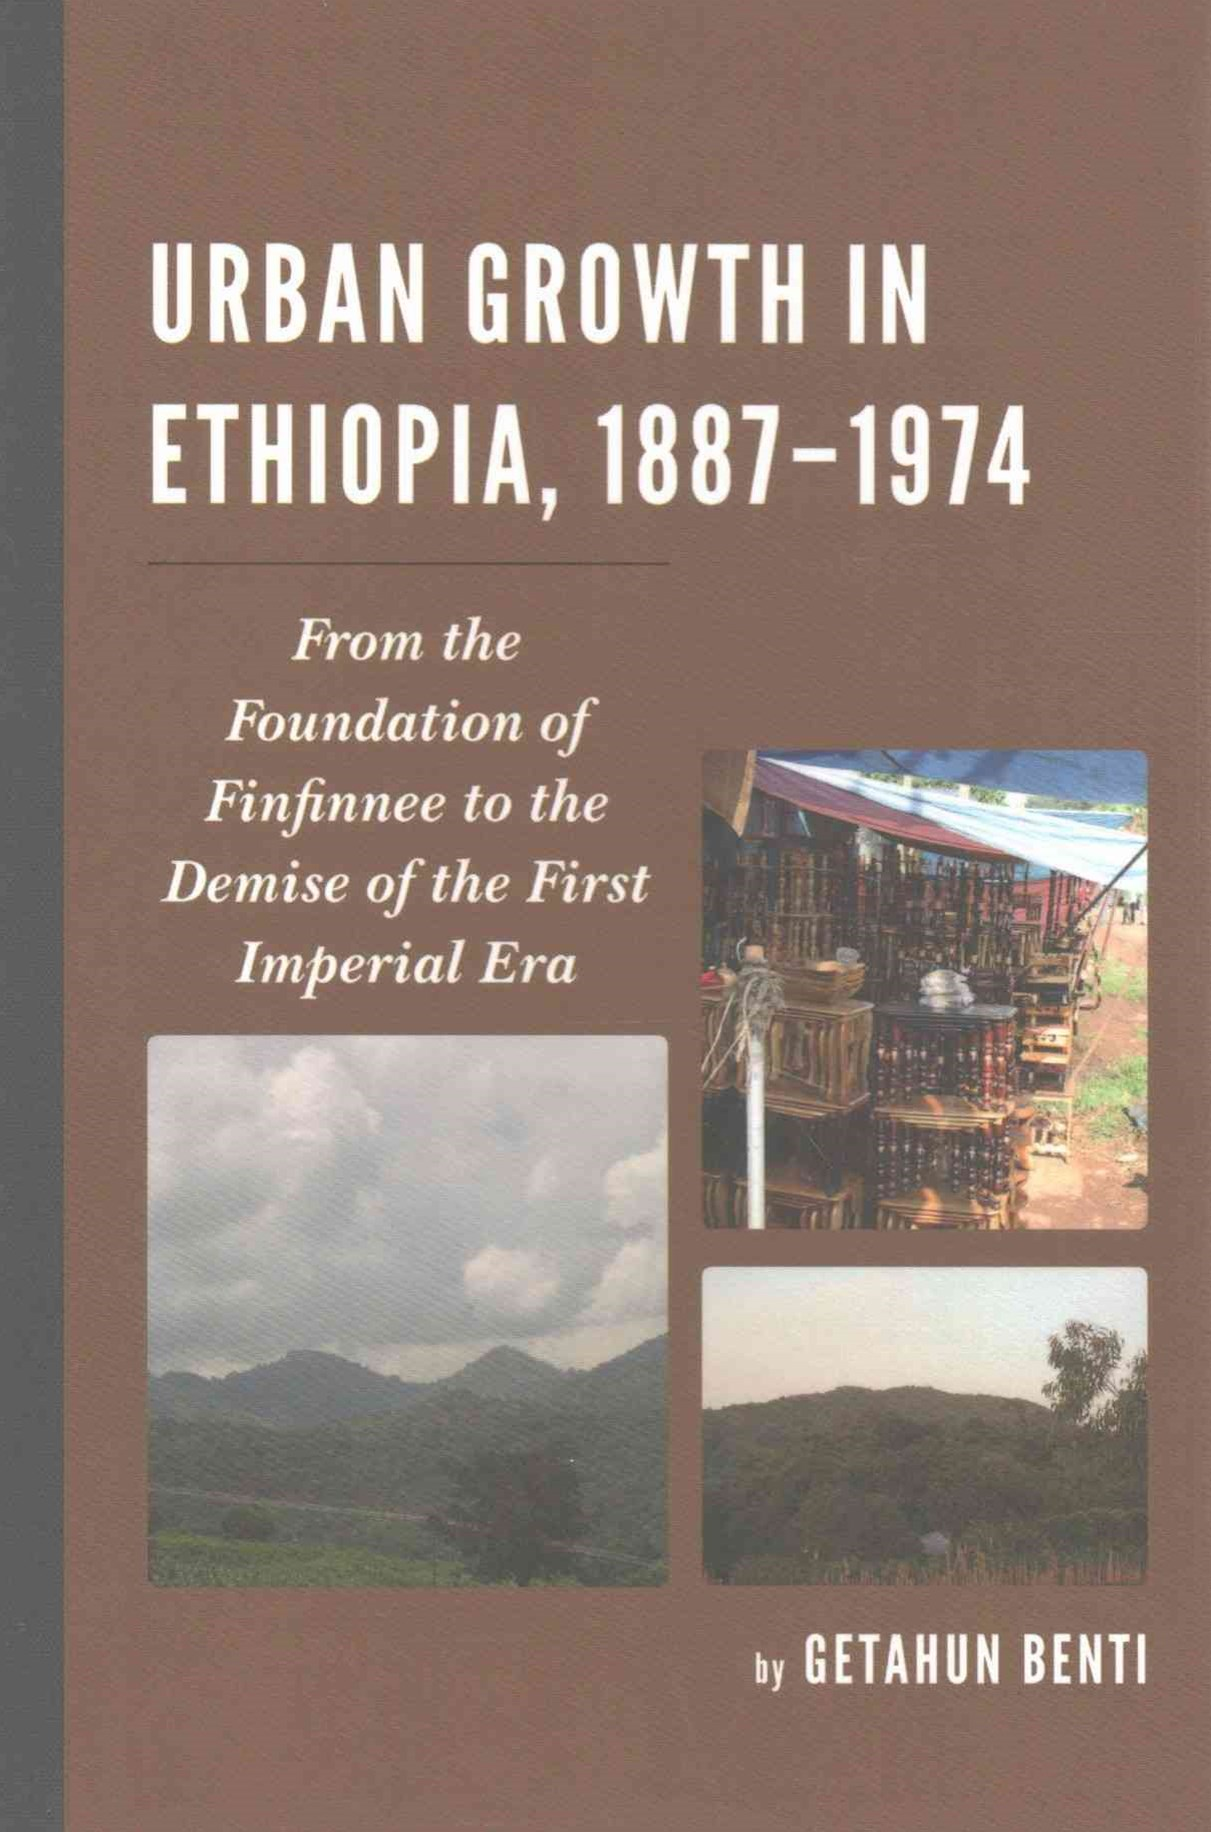 Urban Growth in Ethiopia, 1887-1974